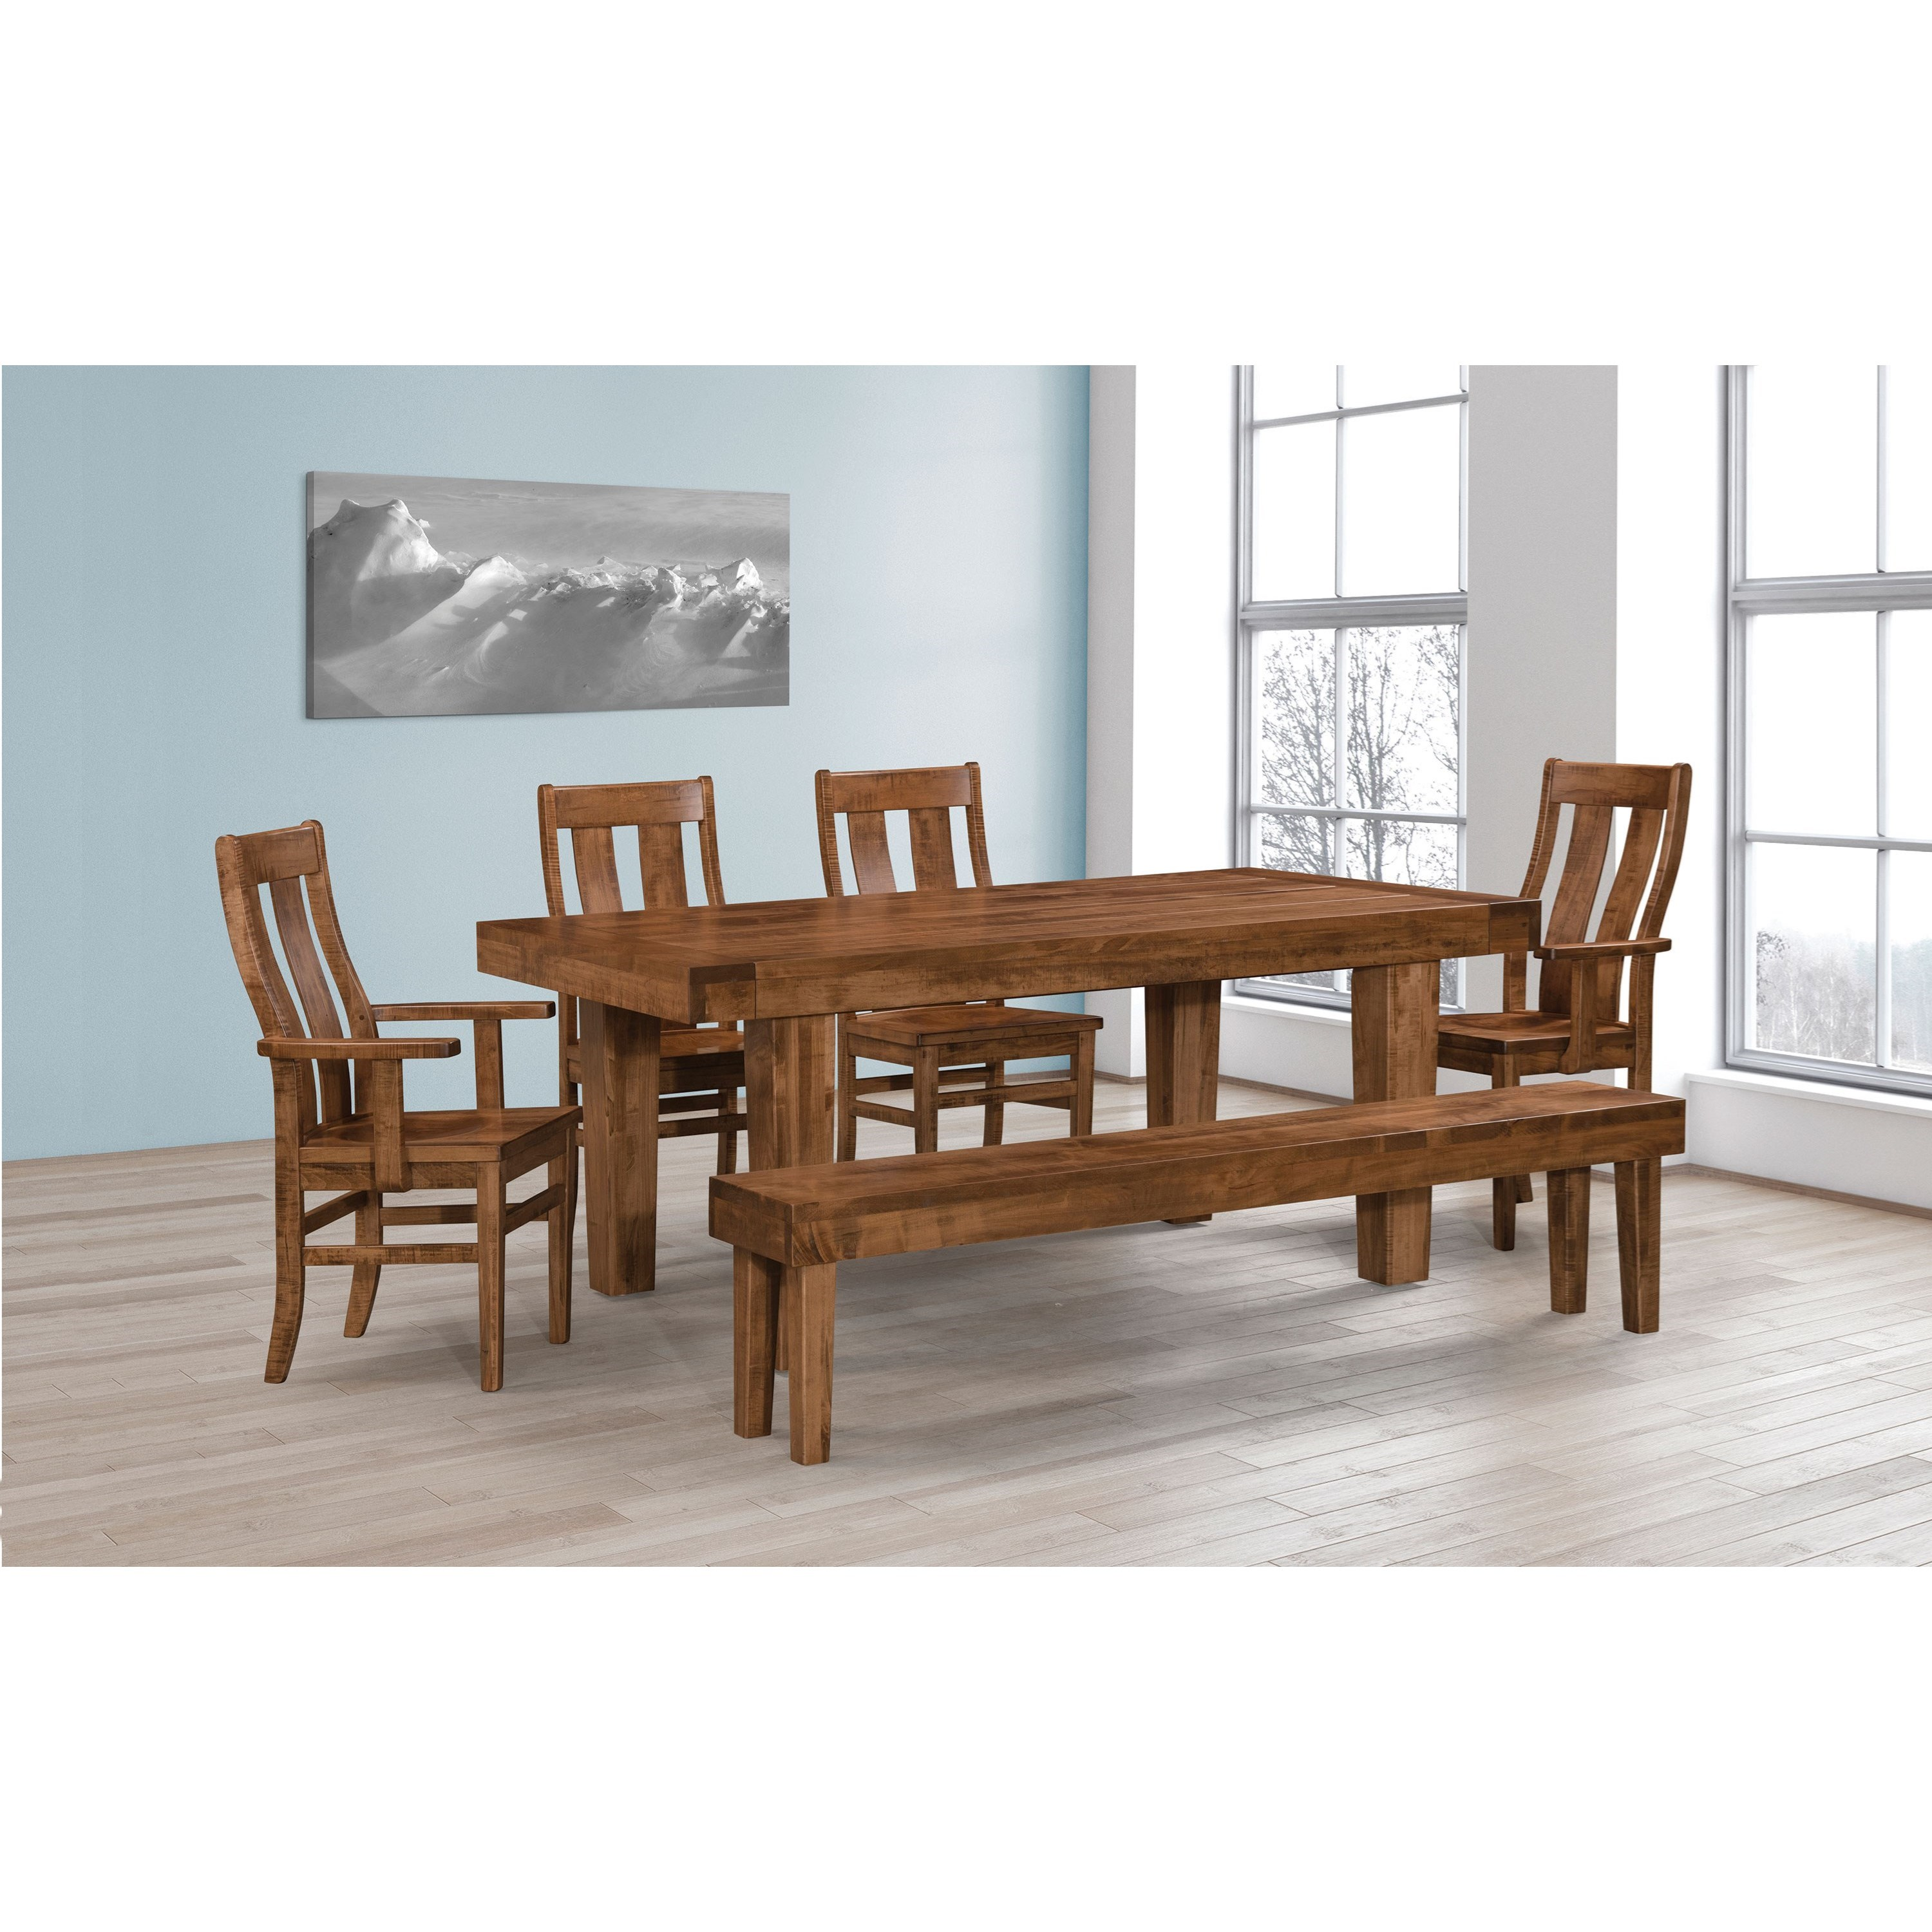 Empire Customizable Table & Chair Set w/ Bench by Weaver Woodcraft at Saugerties Furniture Mart